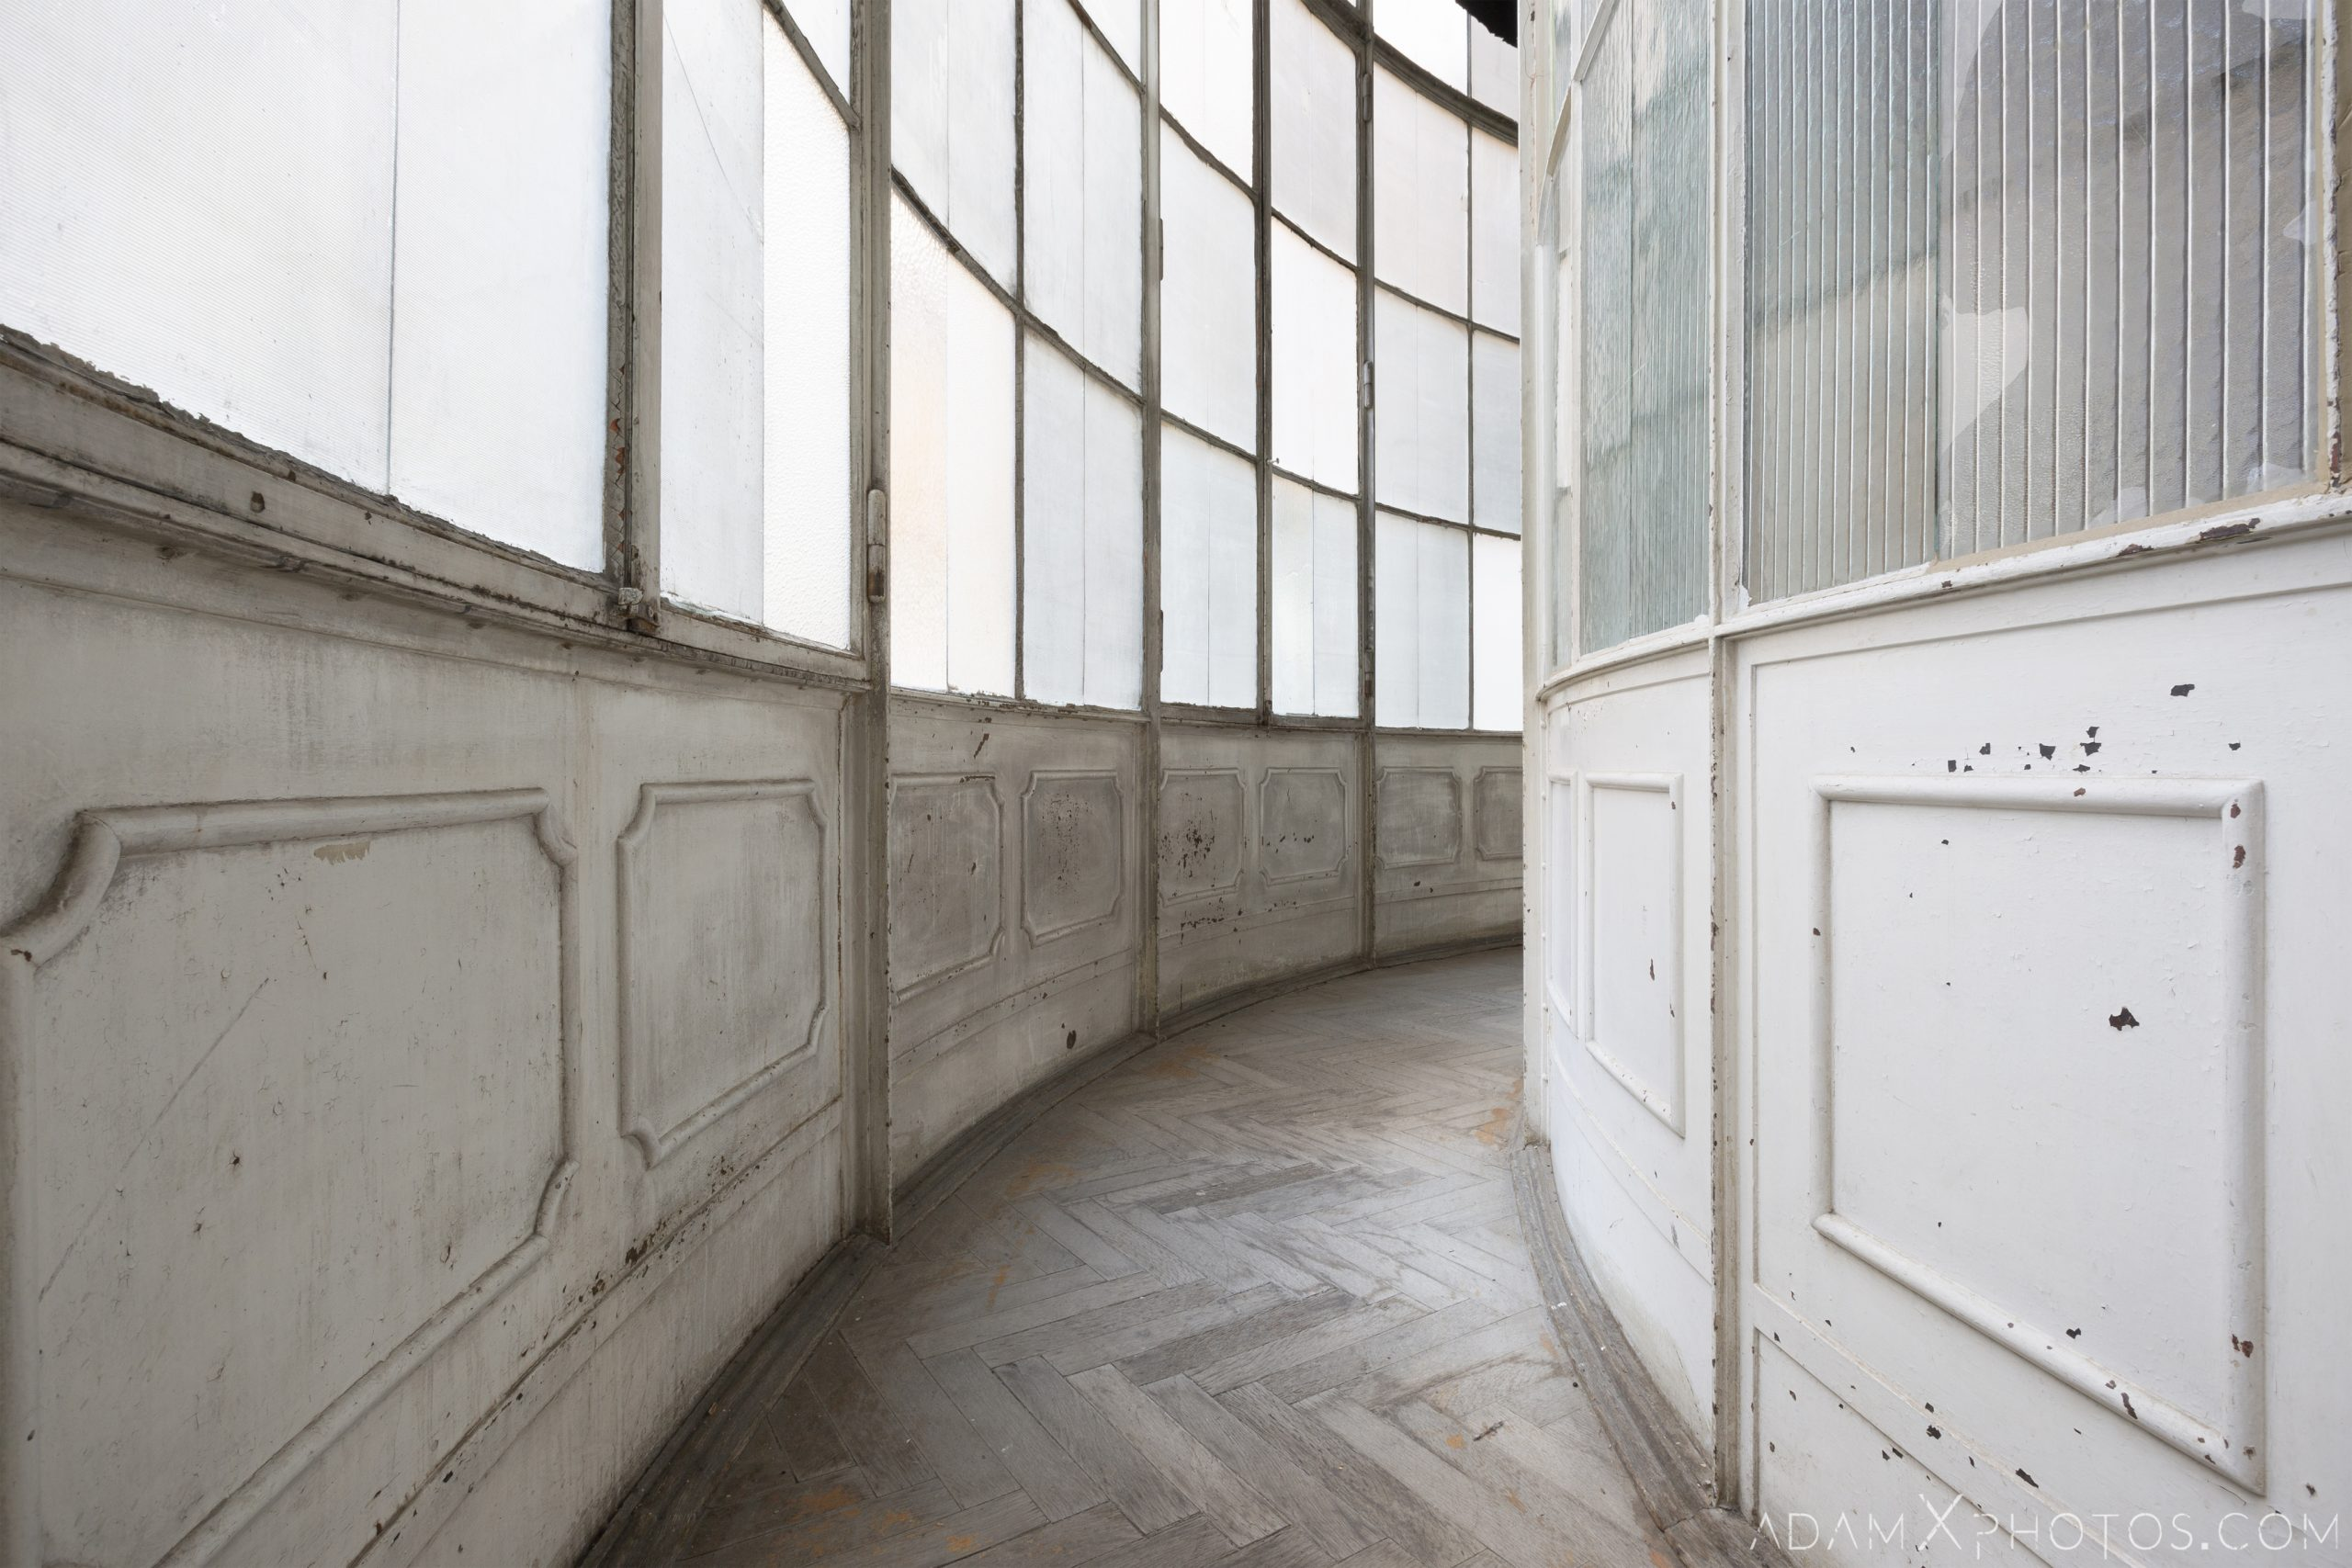 Curved walkway balcony windows parquet white Adria Palace Budapest Hungary Adam X Urbex Urban Exploration Access 2018 Blade Runner 2049 Abandoned decay ruins lost forgotten derelict location creepy haunting eerie security ornate grand neo baroque